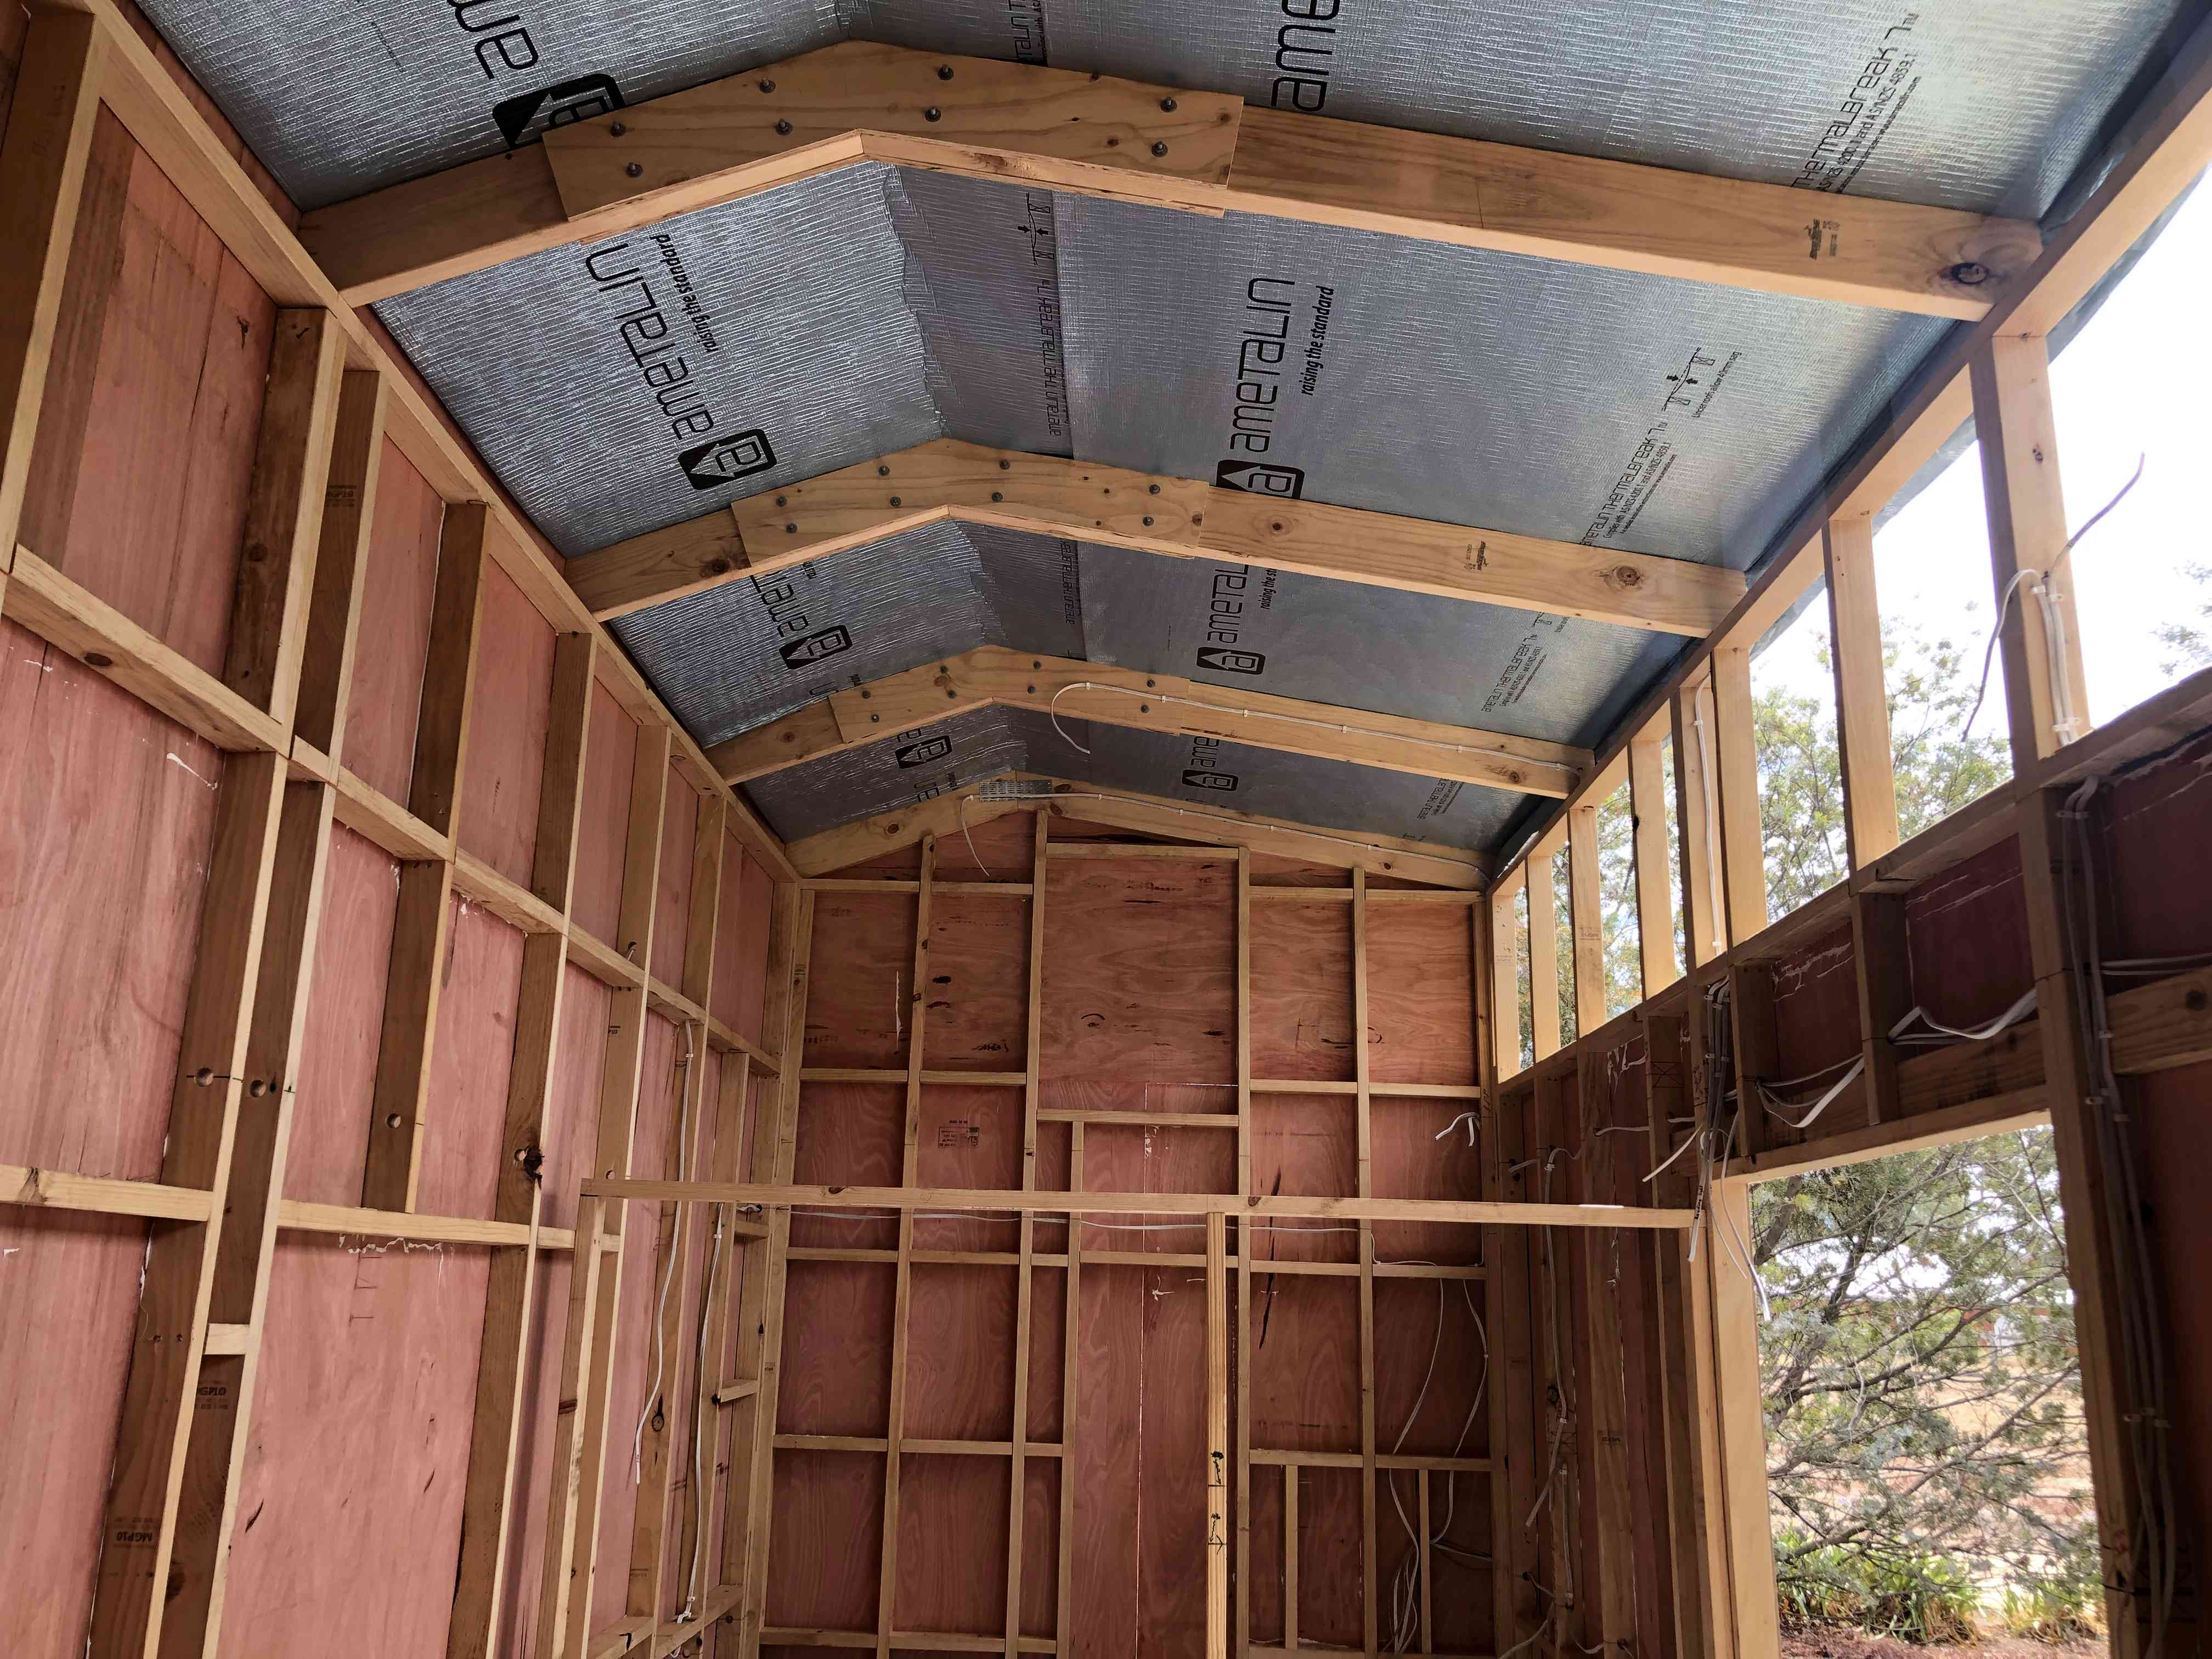 Fred's tiny house insulation